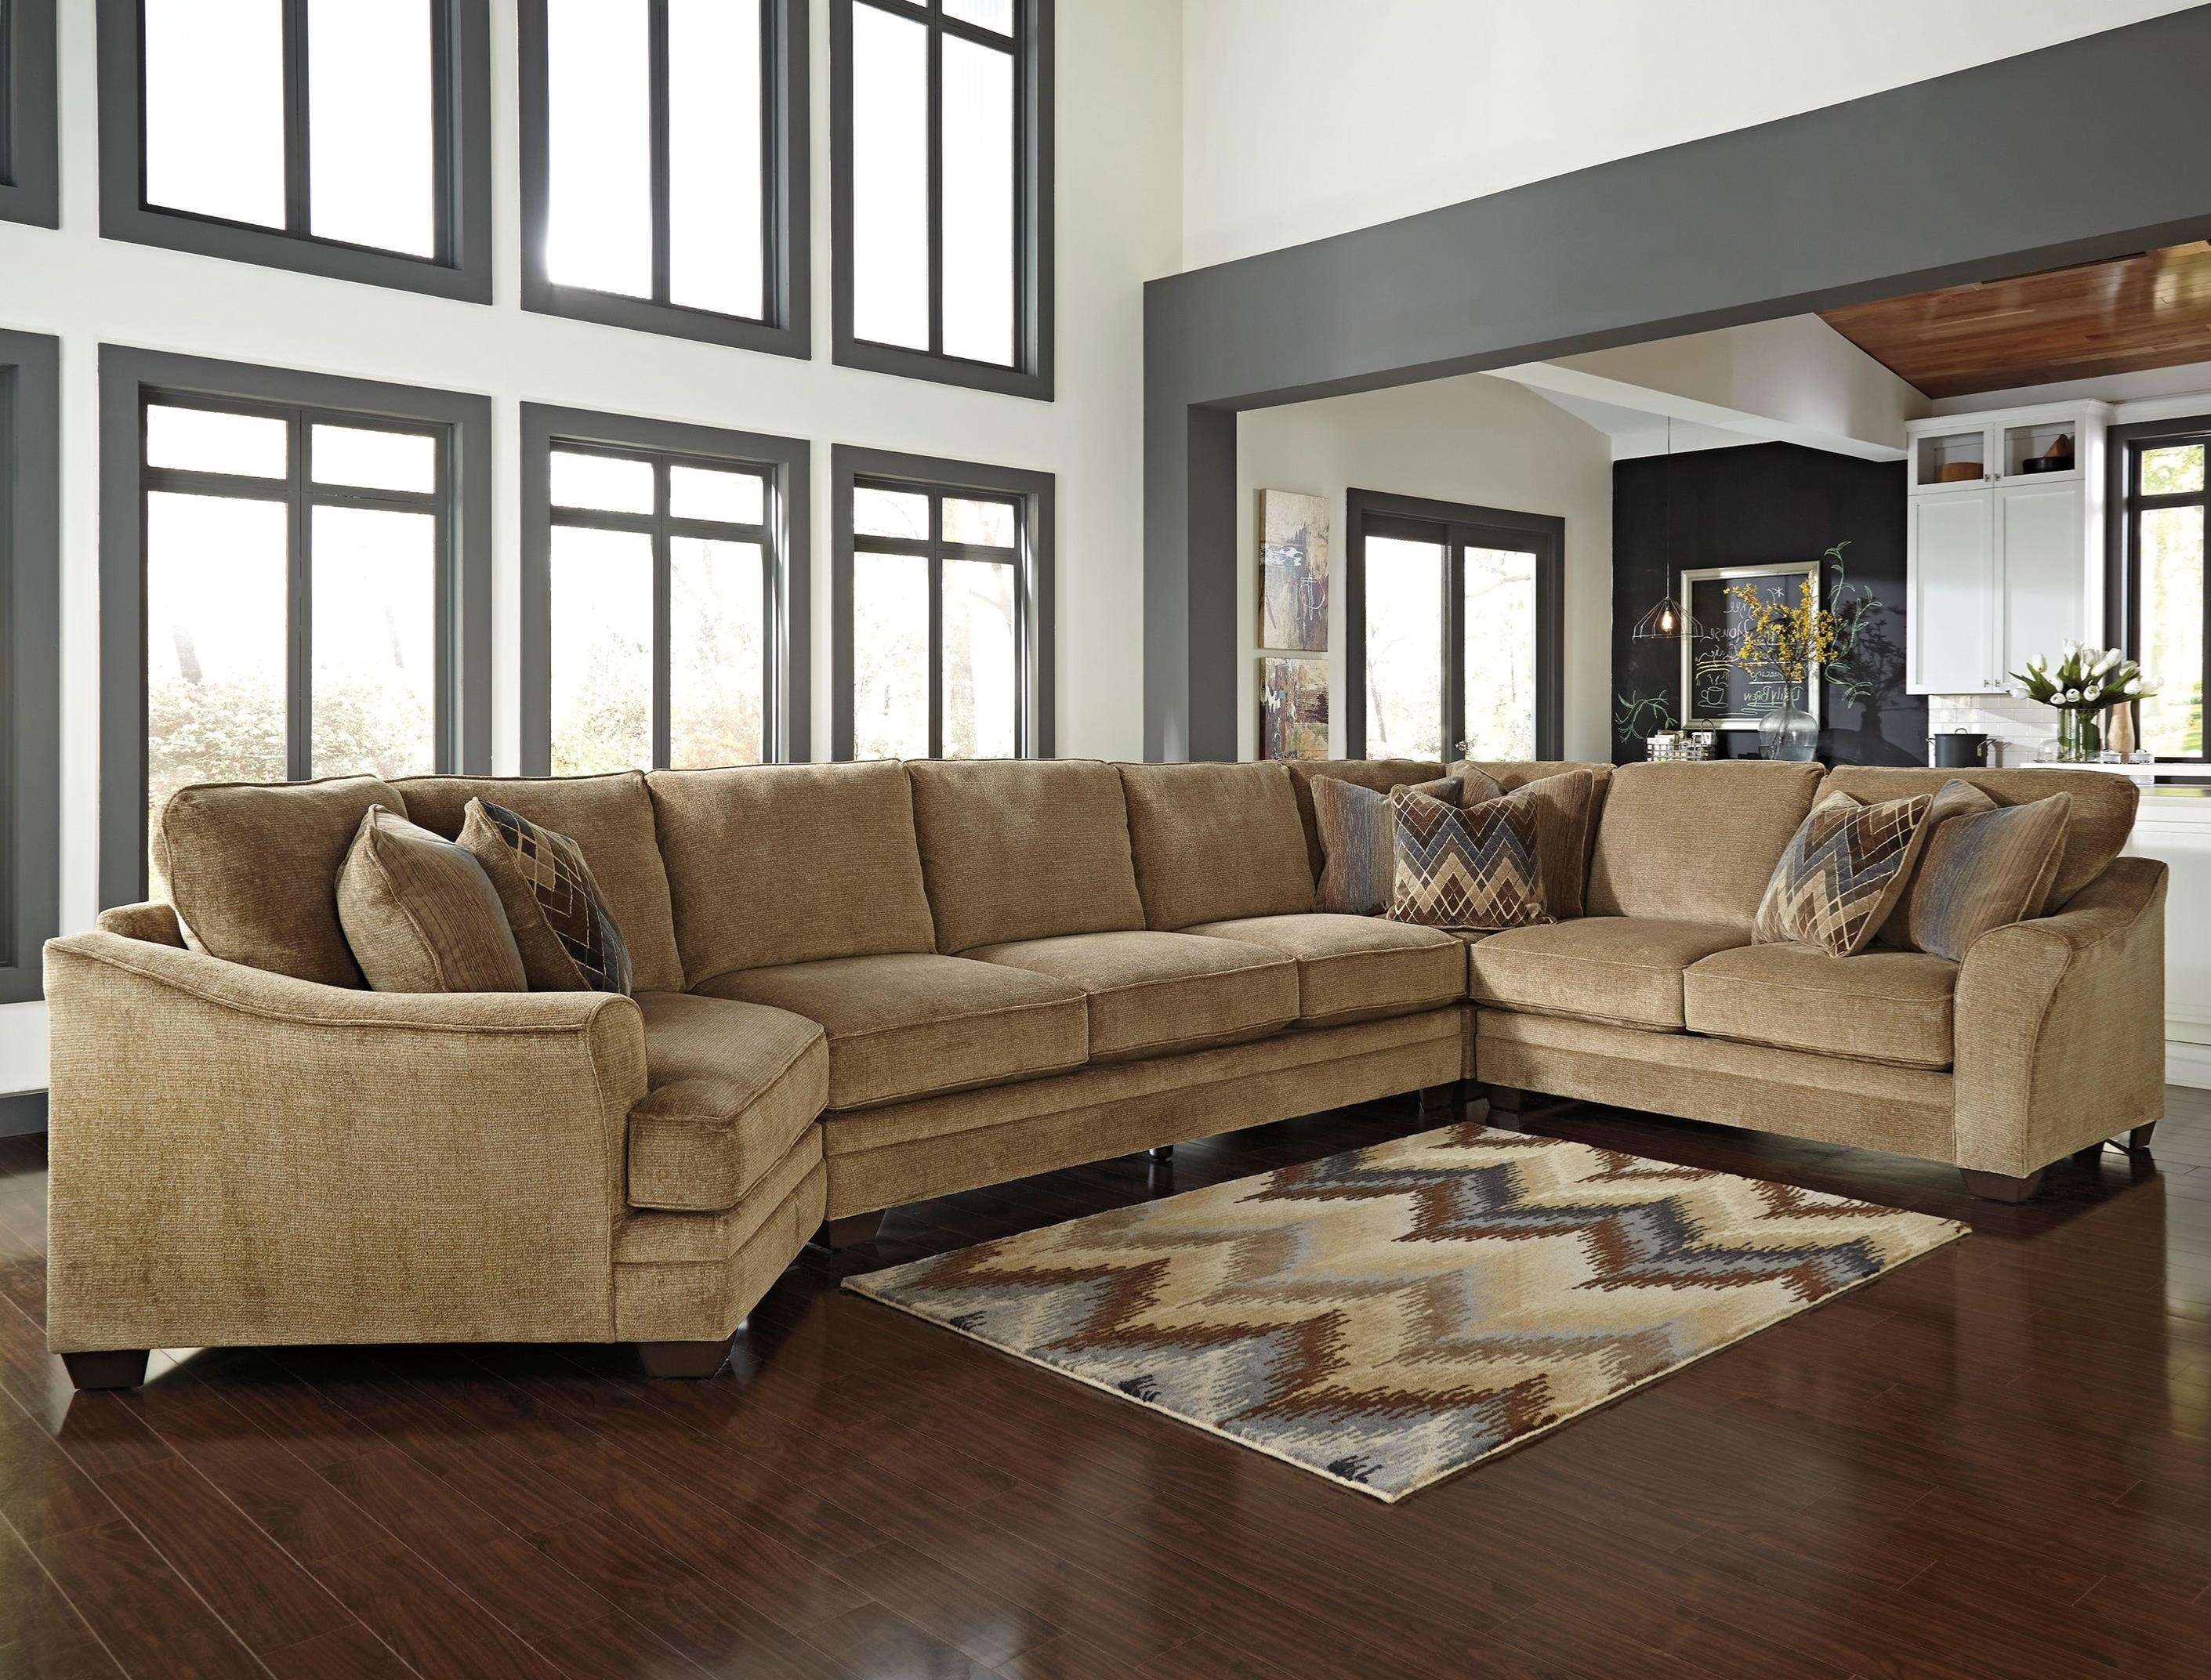 Benchcraft Lonsdale 4-Piece Sectional w/ Armless Sofa & Cuddler - Item Number: 9211176+99+77+56